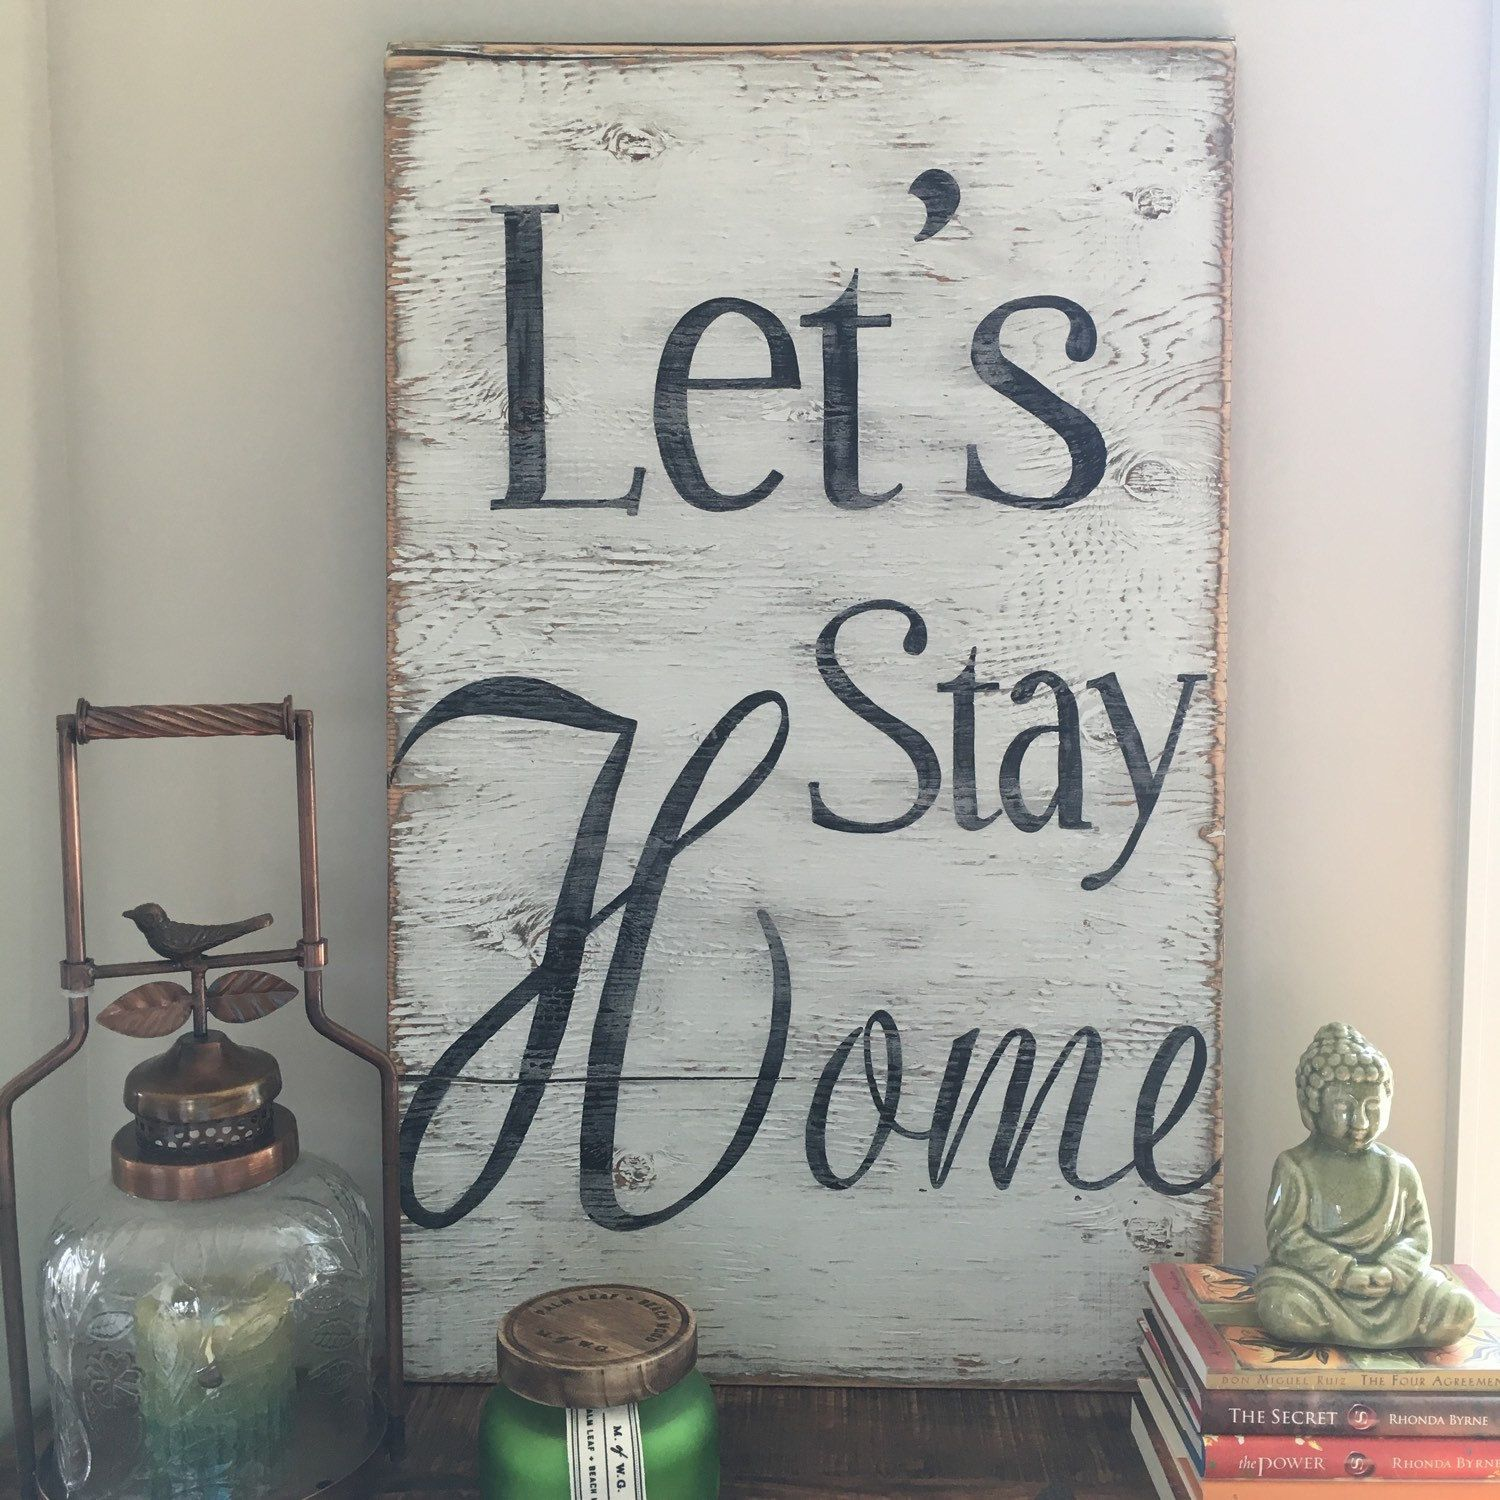 Let S Stay Home Hand Painted Wood Sign Home Decor Kitchen Sign Kitchen Decor Dinning Room Sign Living Room Sign Kitchen Sign